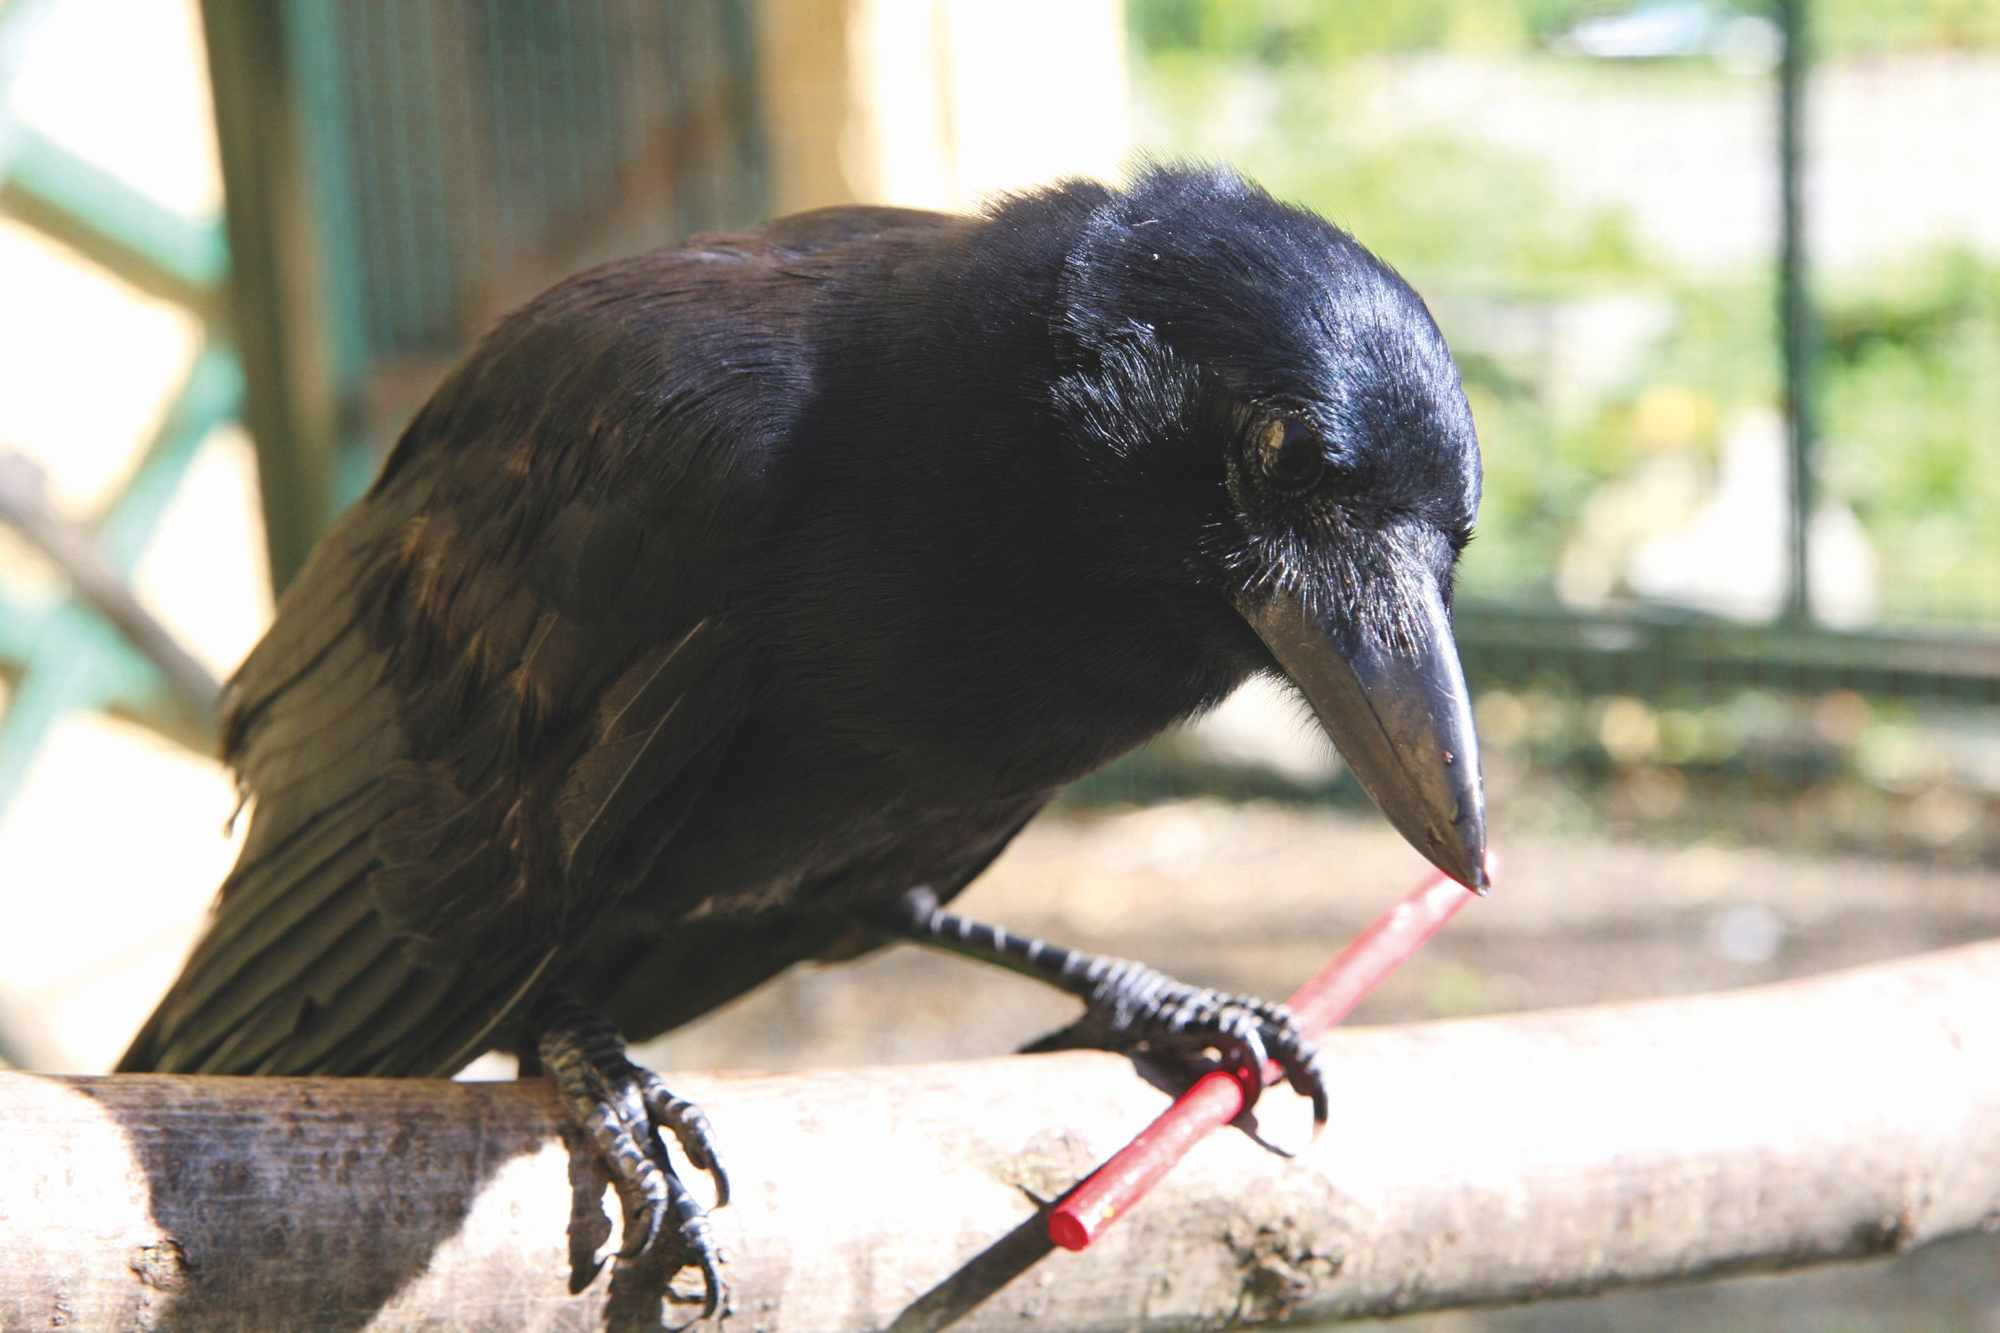 A New Caledonian crow with a stick tool. © Auguste von Bayern